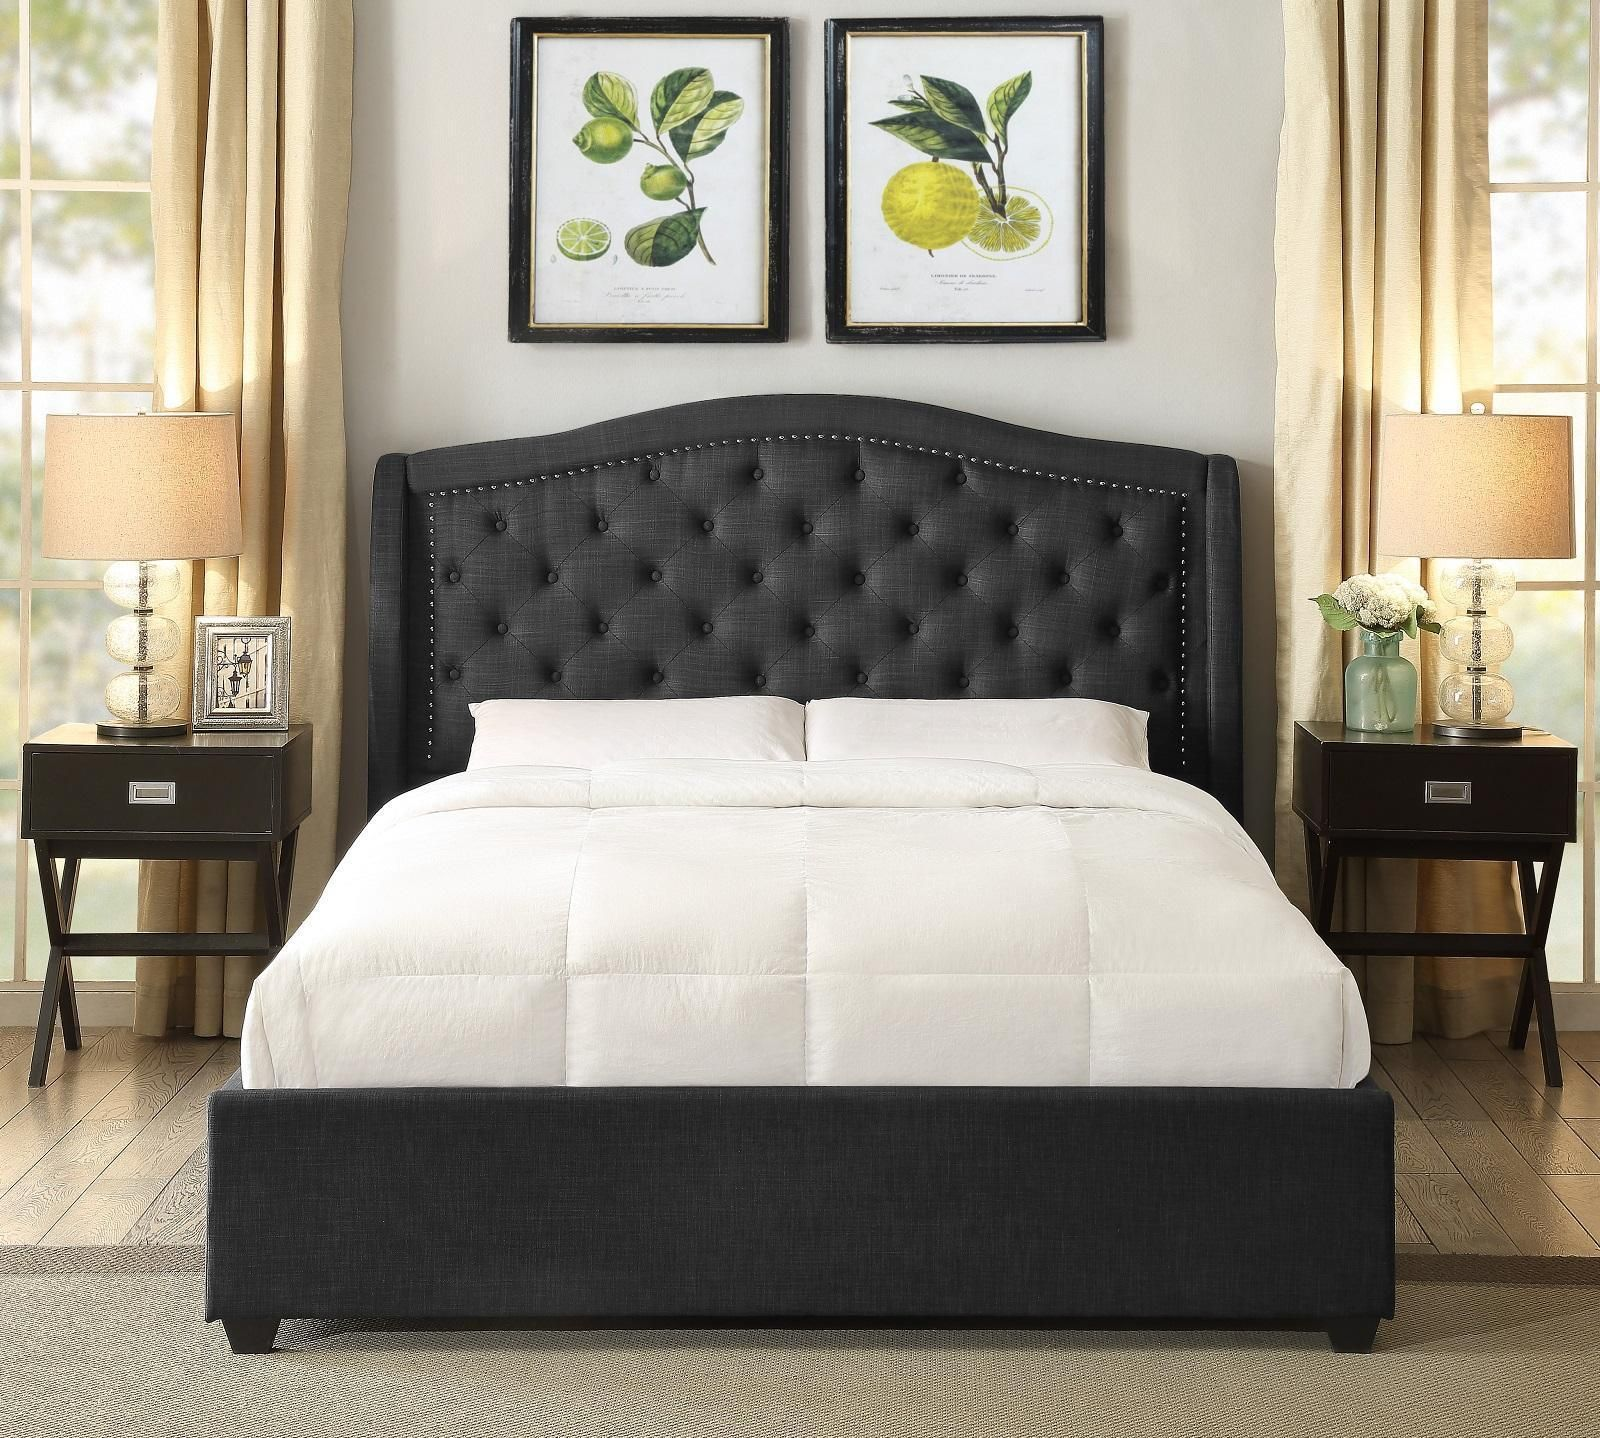 Dark Headboard For Adjustable Bed in 2020 Headboards for